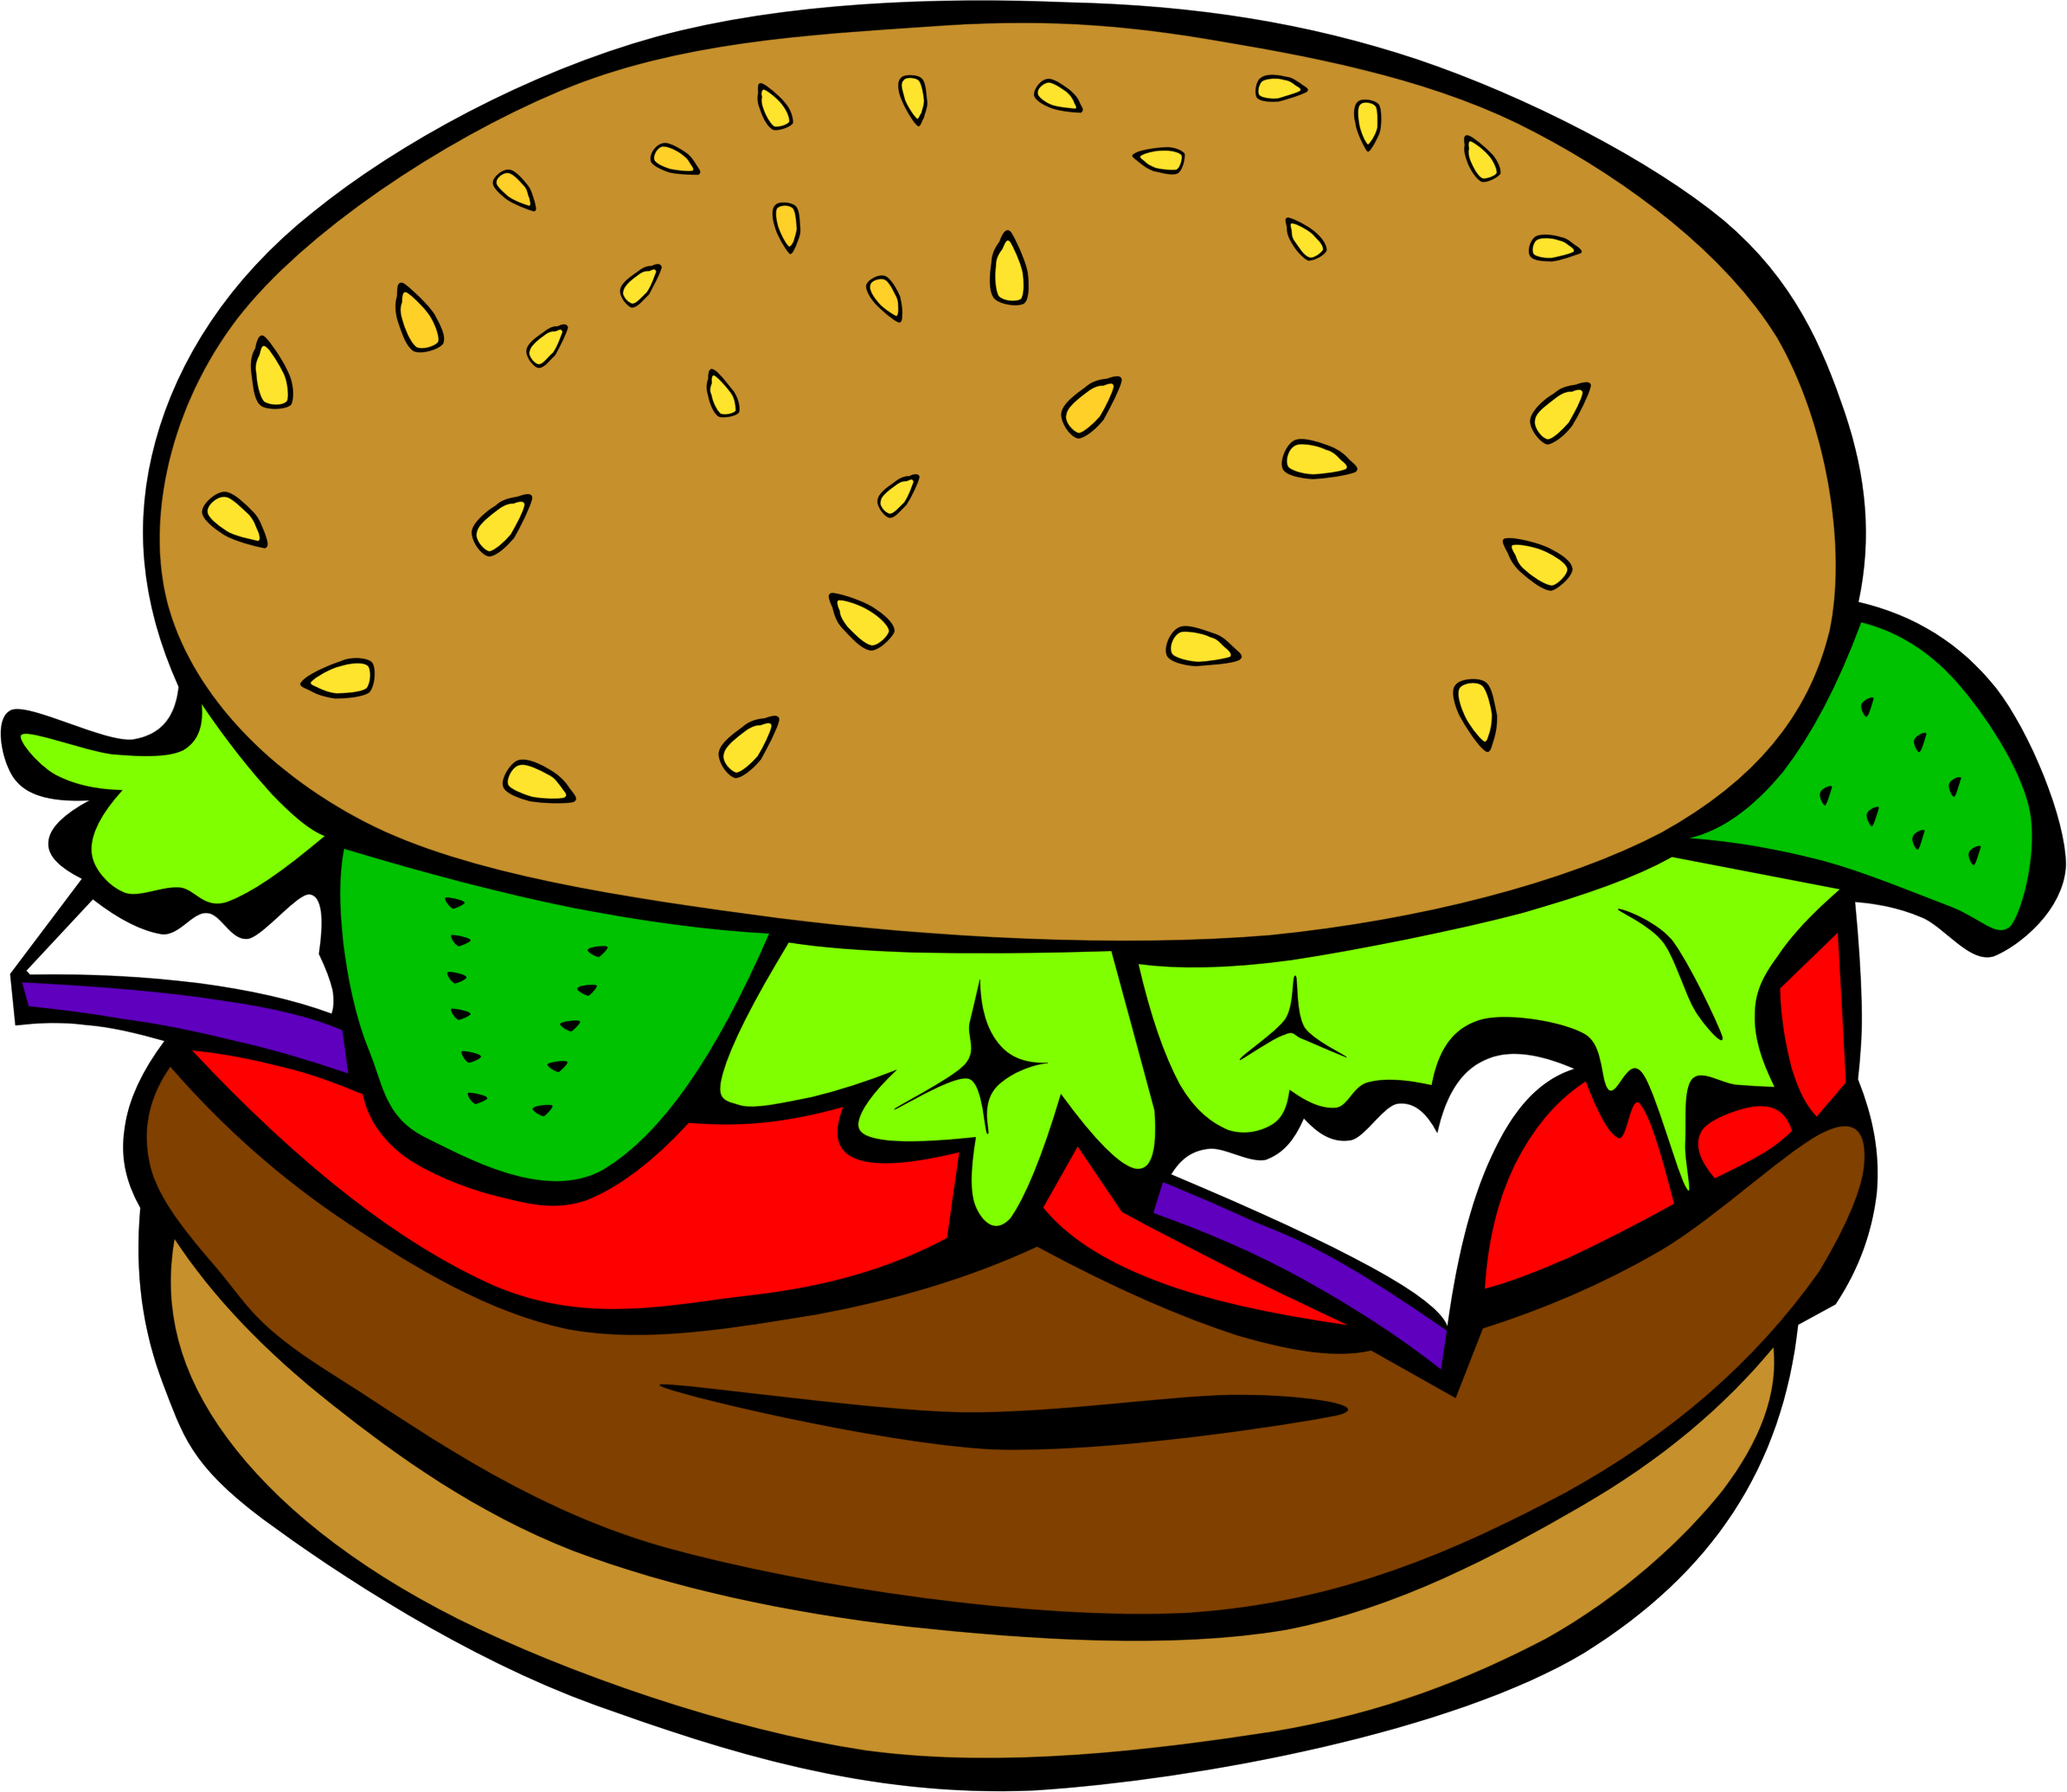 Burger diner food pencil. Onion clipart animated